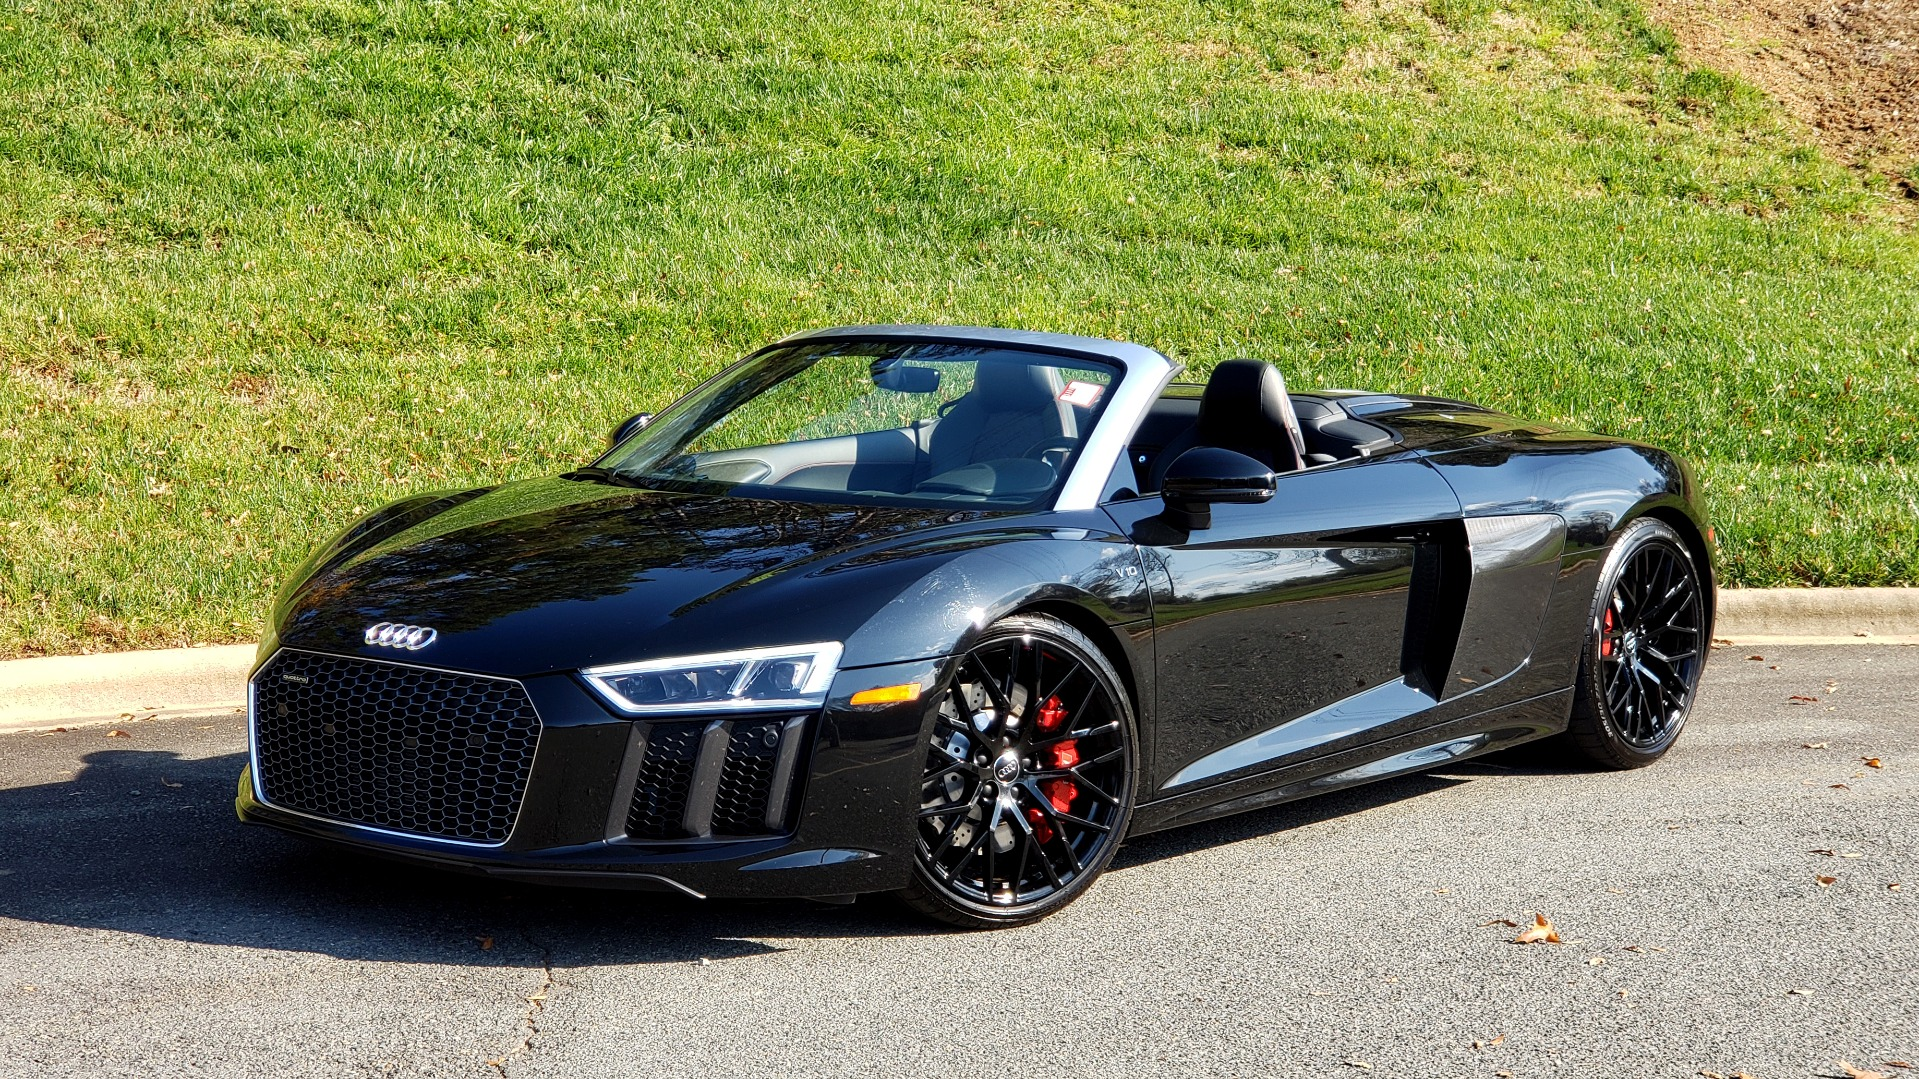 Used 2017 Audi R8 SPYDER V10 S-TRONIC / CARBON EXT & INT PKG / NAV / REARVIEW for sale Sold at Formula Imports in Charlotte NC 28227 1